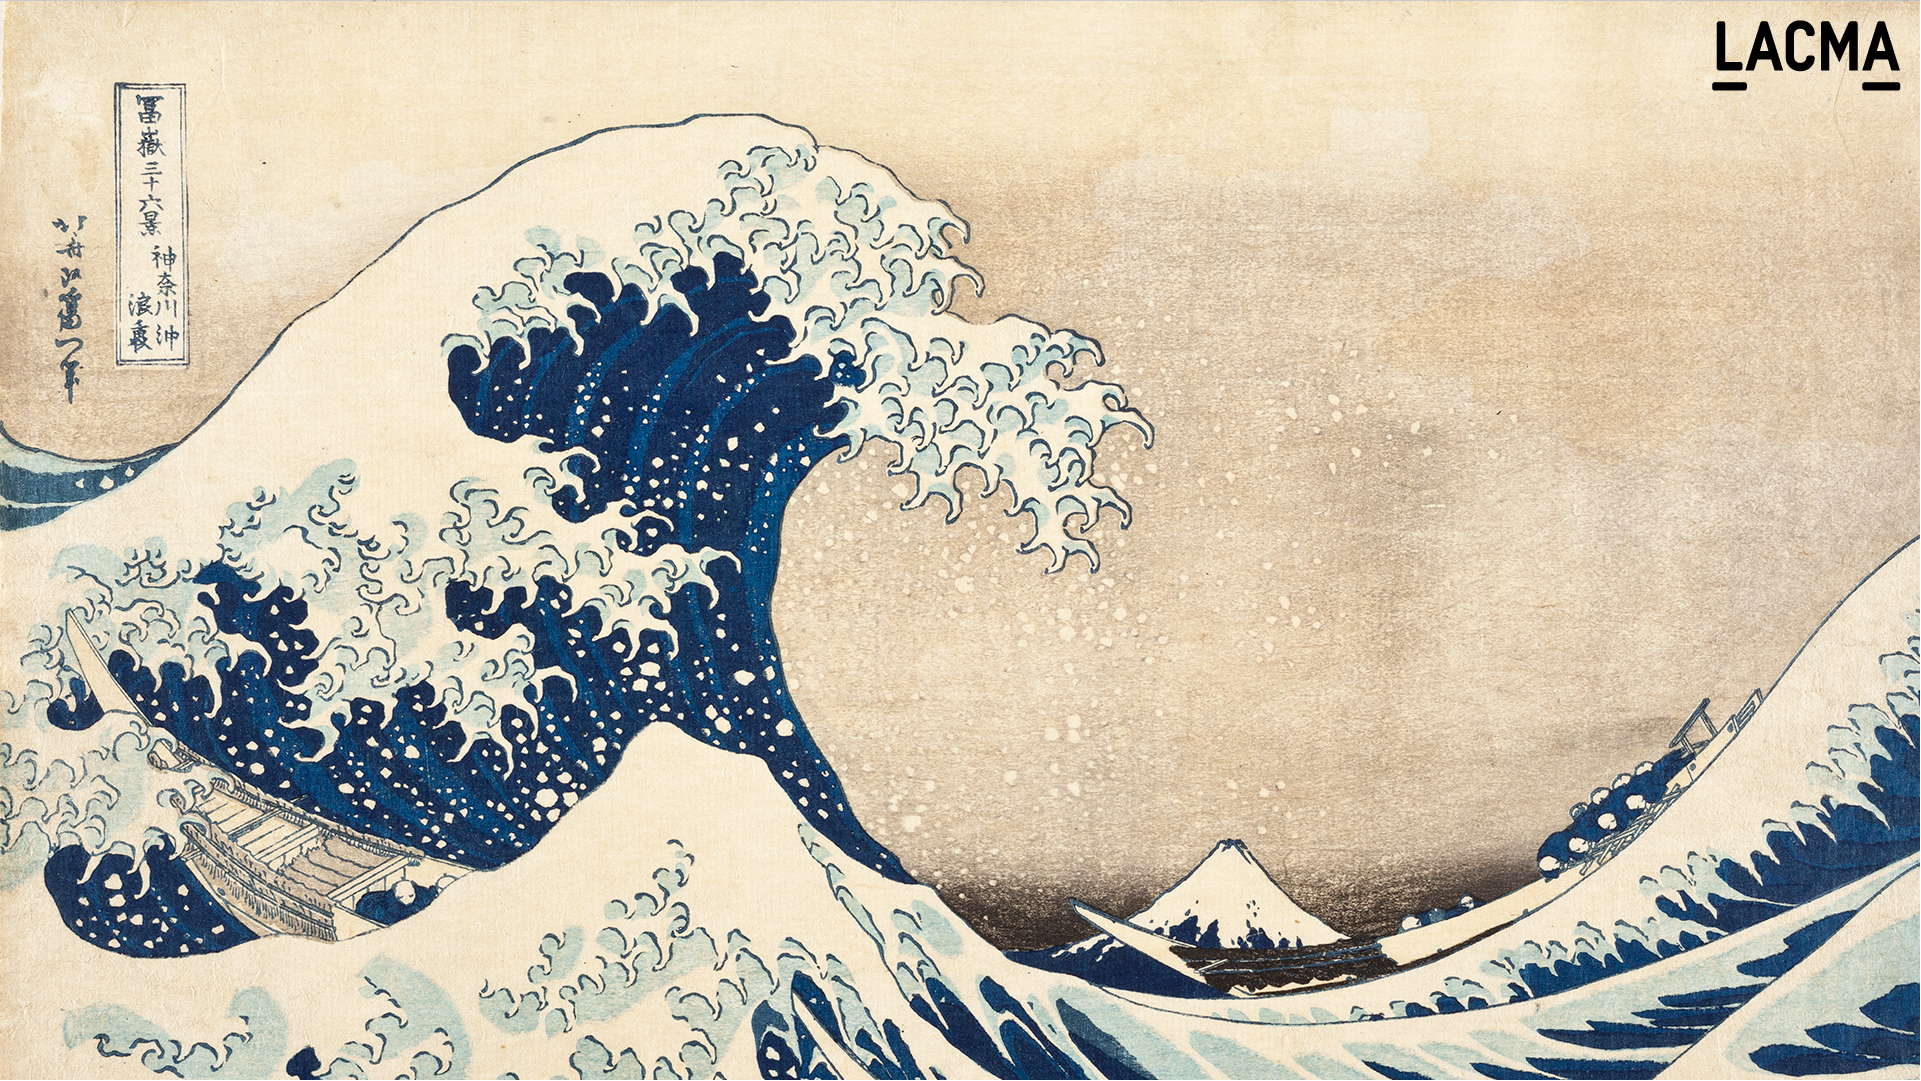 The Great Wave off Kanagawa by Katsushika Hokusai (Japan, 1760-1849)